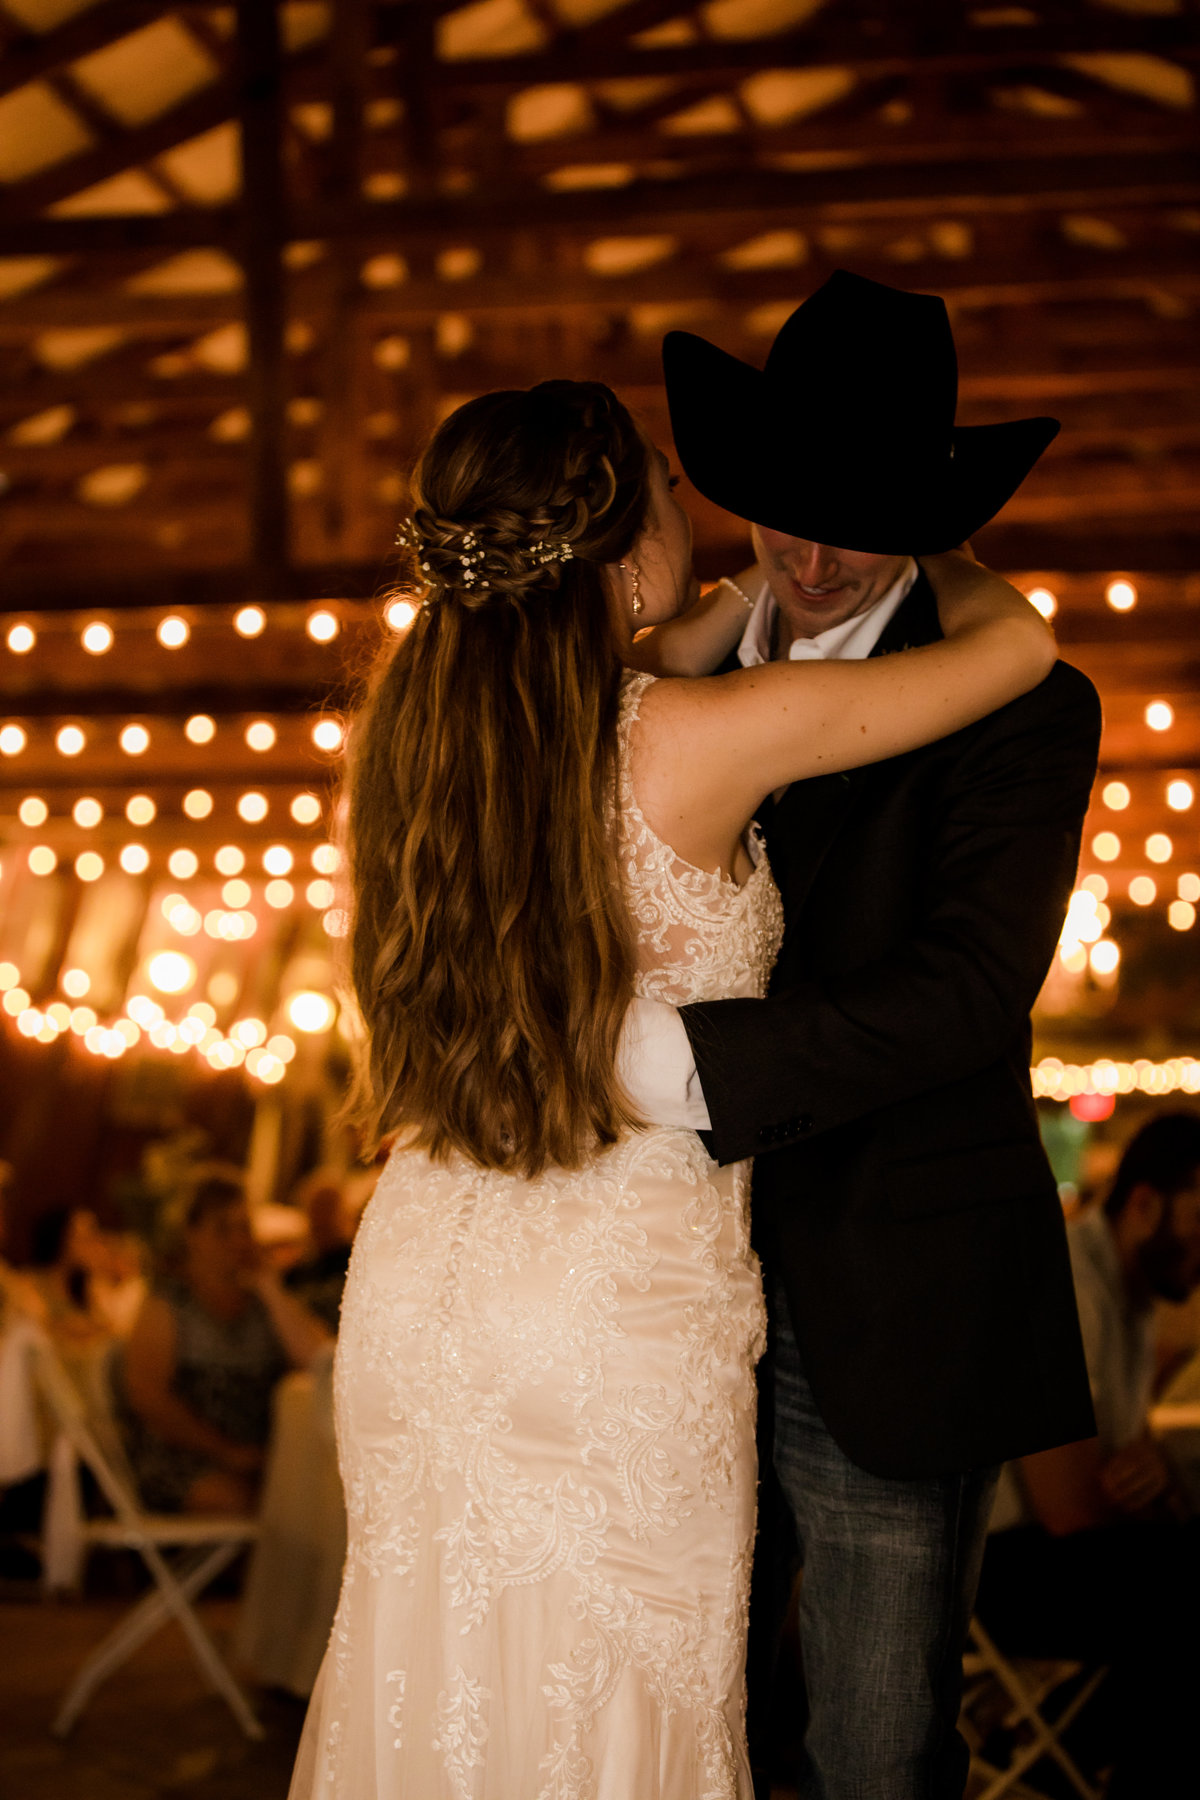 Nsshville Bride - Nashville Brides - The Hayloft Weddings - Tennessee Brides - Kentucky Brides - Southern Brides - Cowboys Wife - Cowboys Bride - Ranch Weddings - Cowboys and Belles162